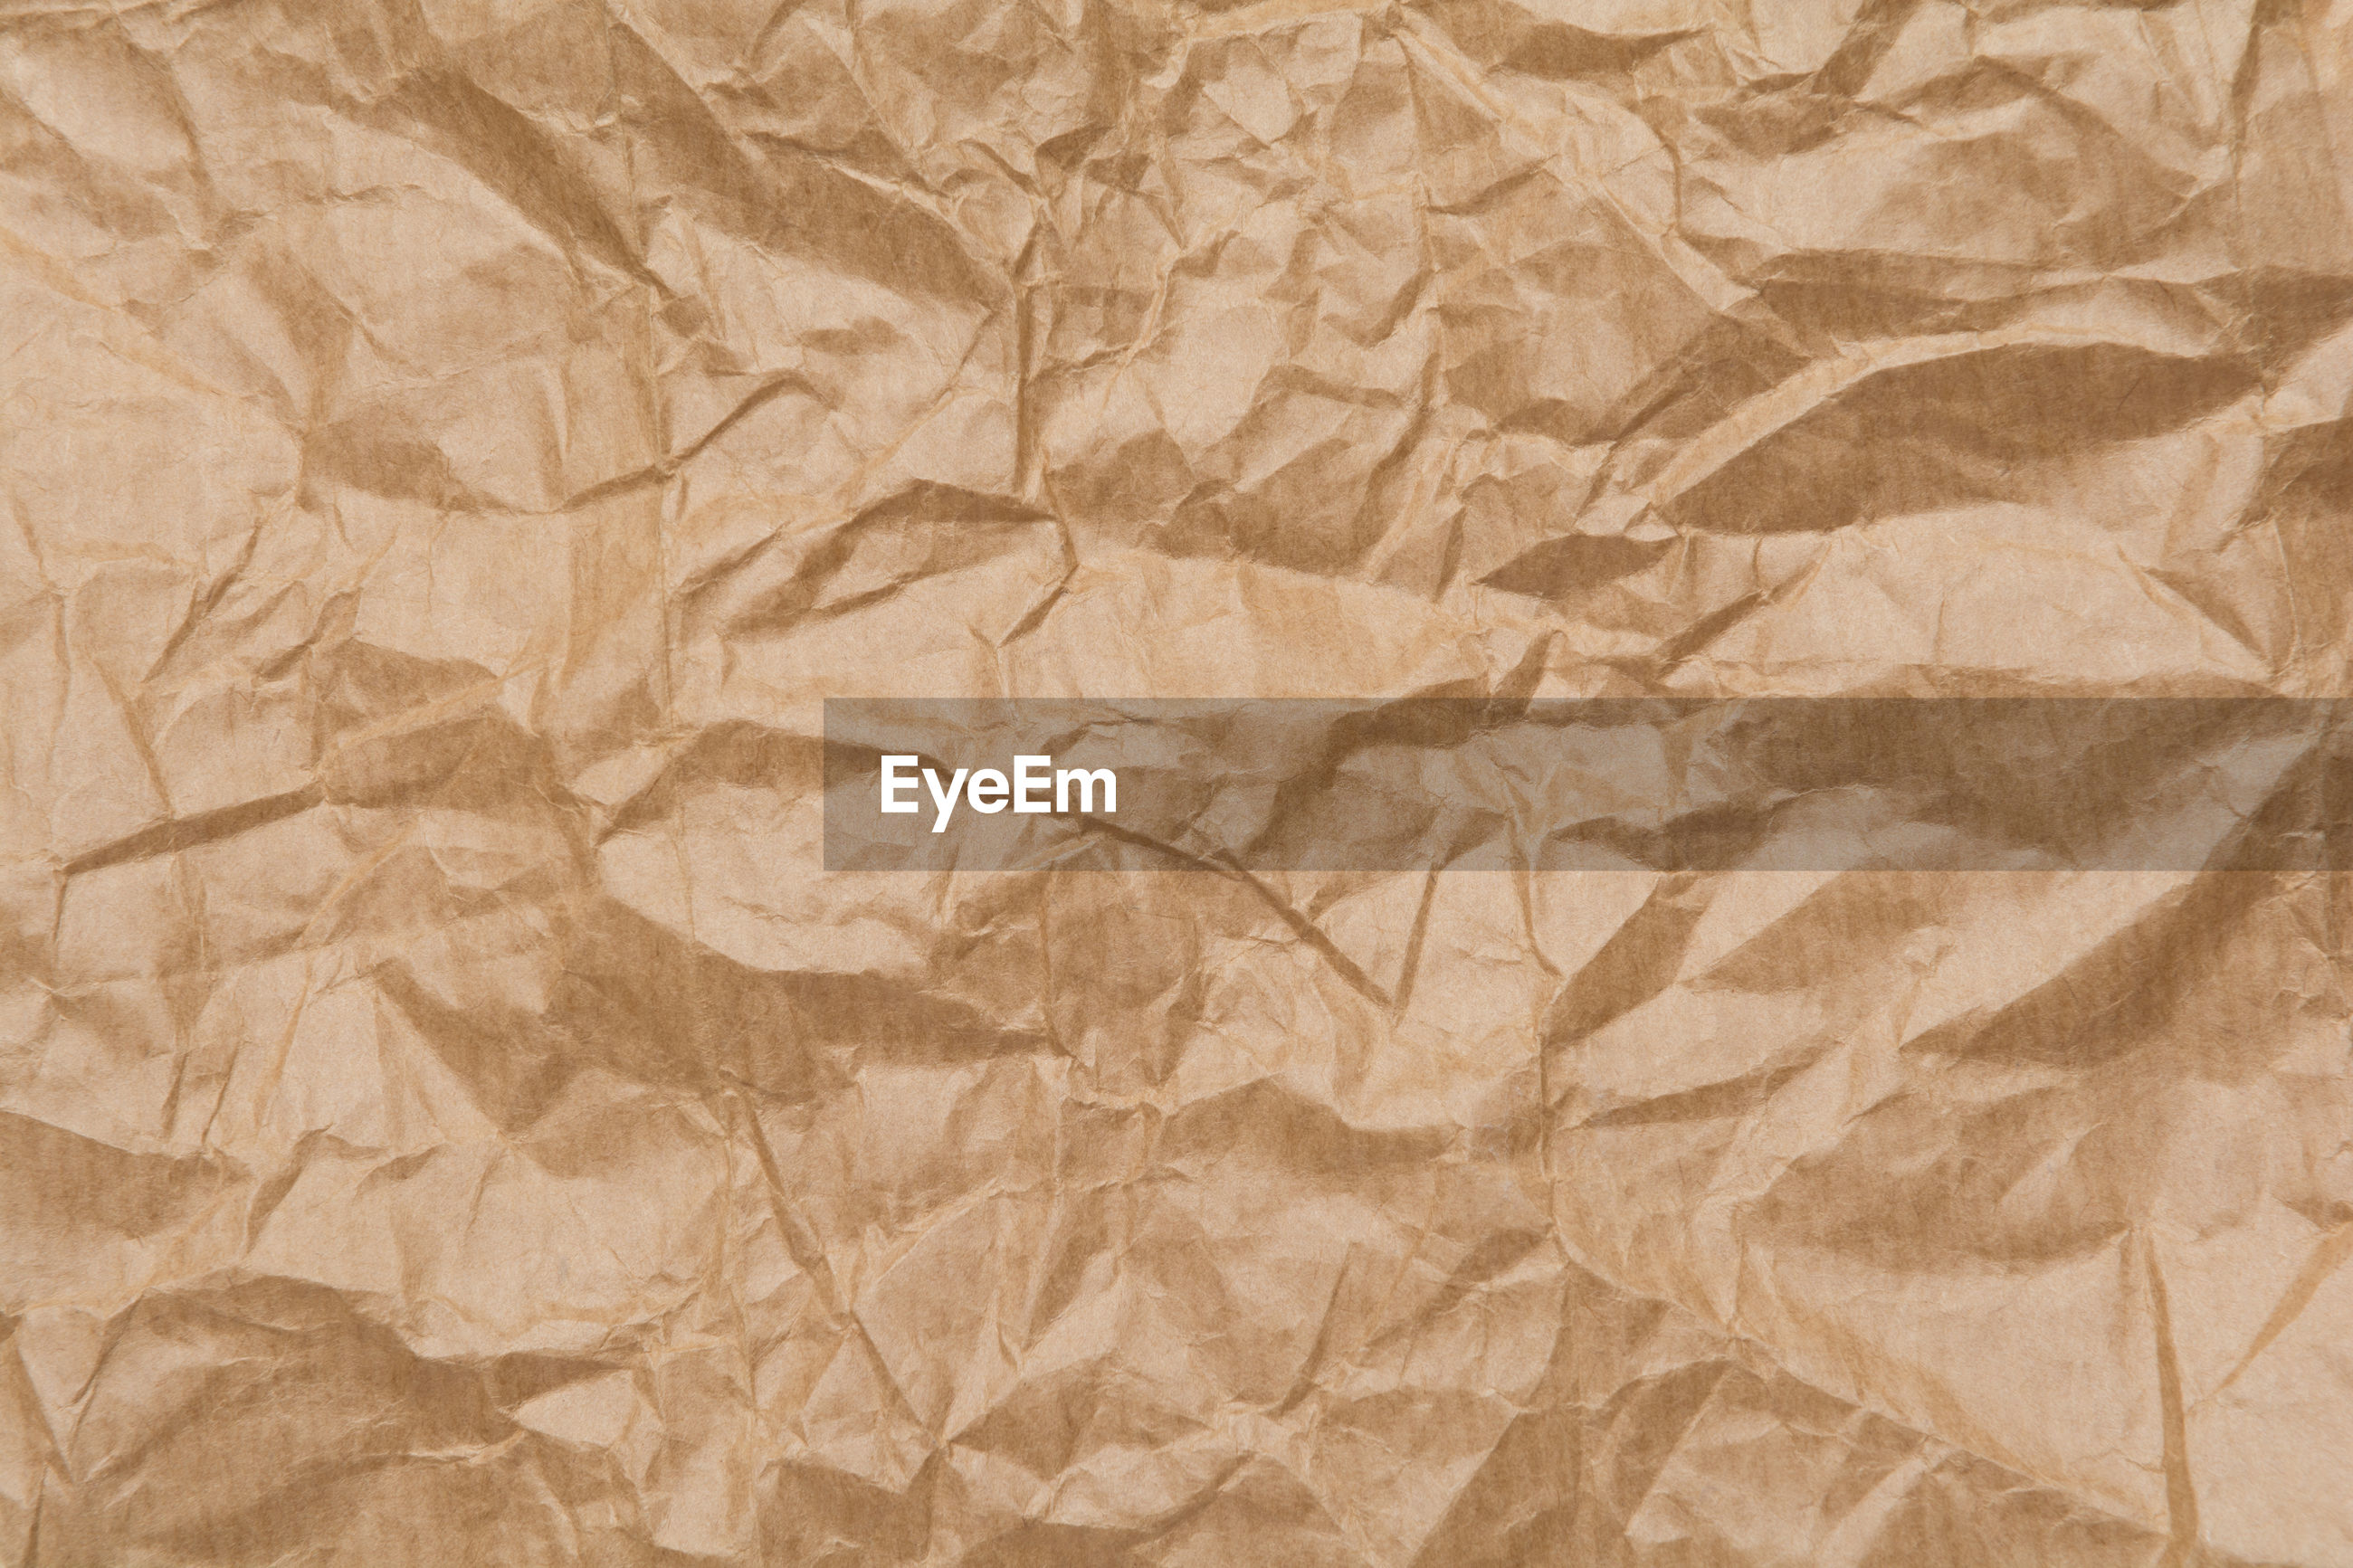 Full frame shot of crumpled brown paper